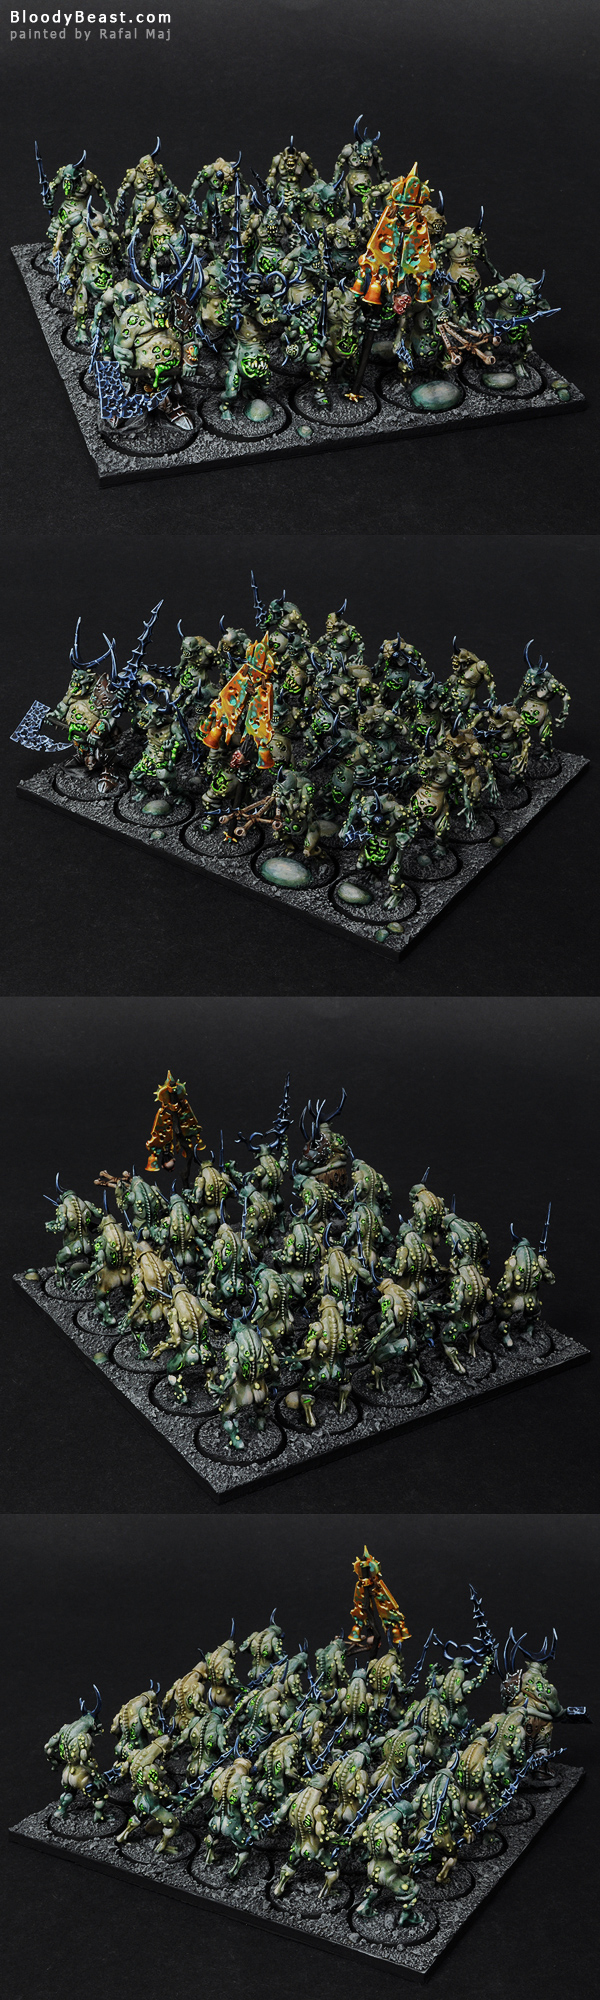 Plaguebearers of Nurgle painted by Rafal Maj (BloodyBeast.com)